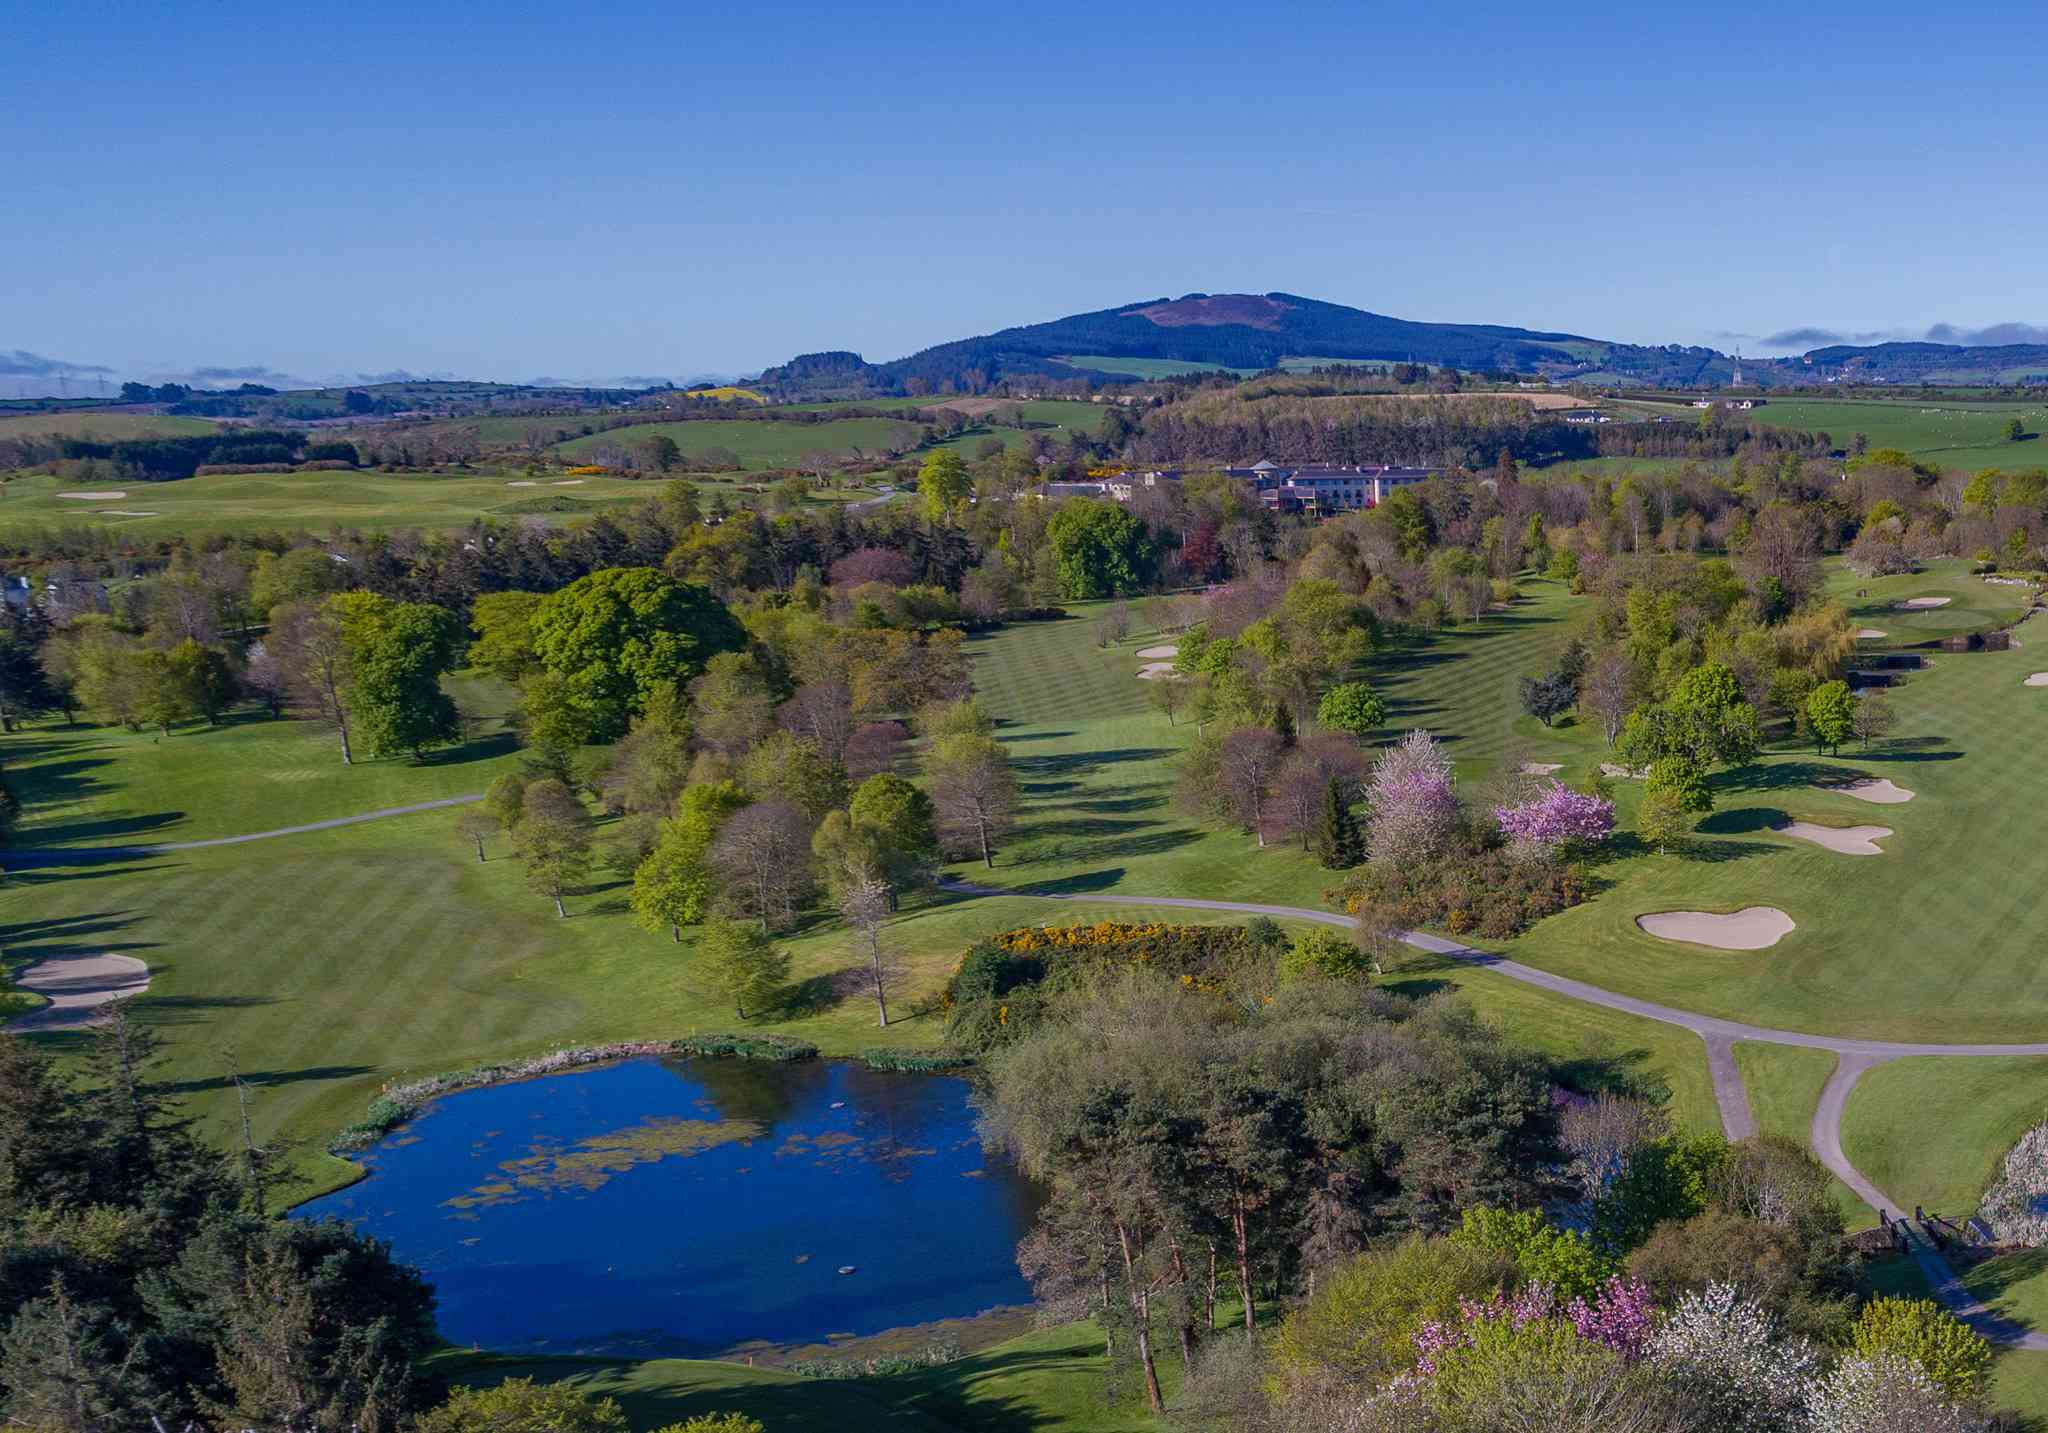 Arial shot of golf course with greens, water and trees